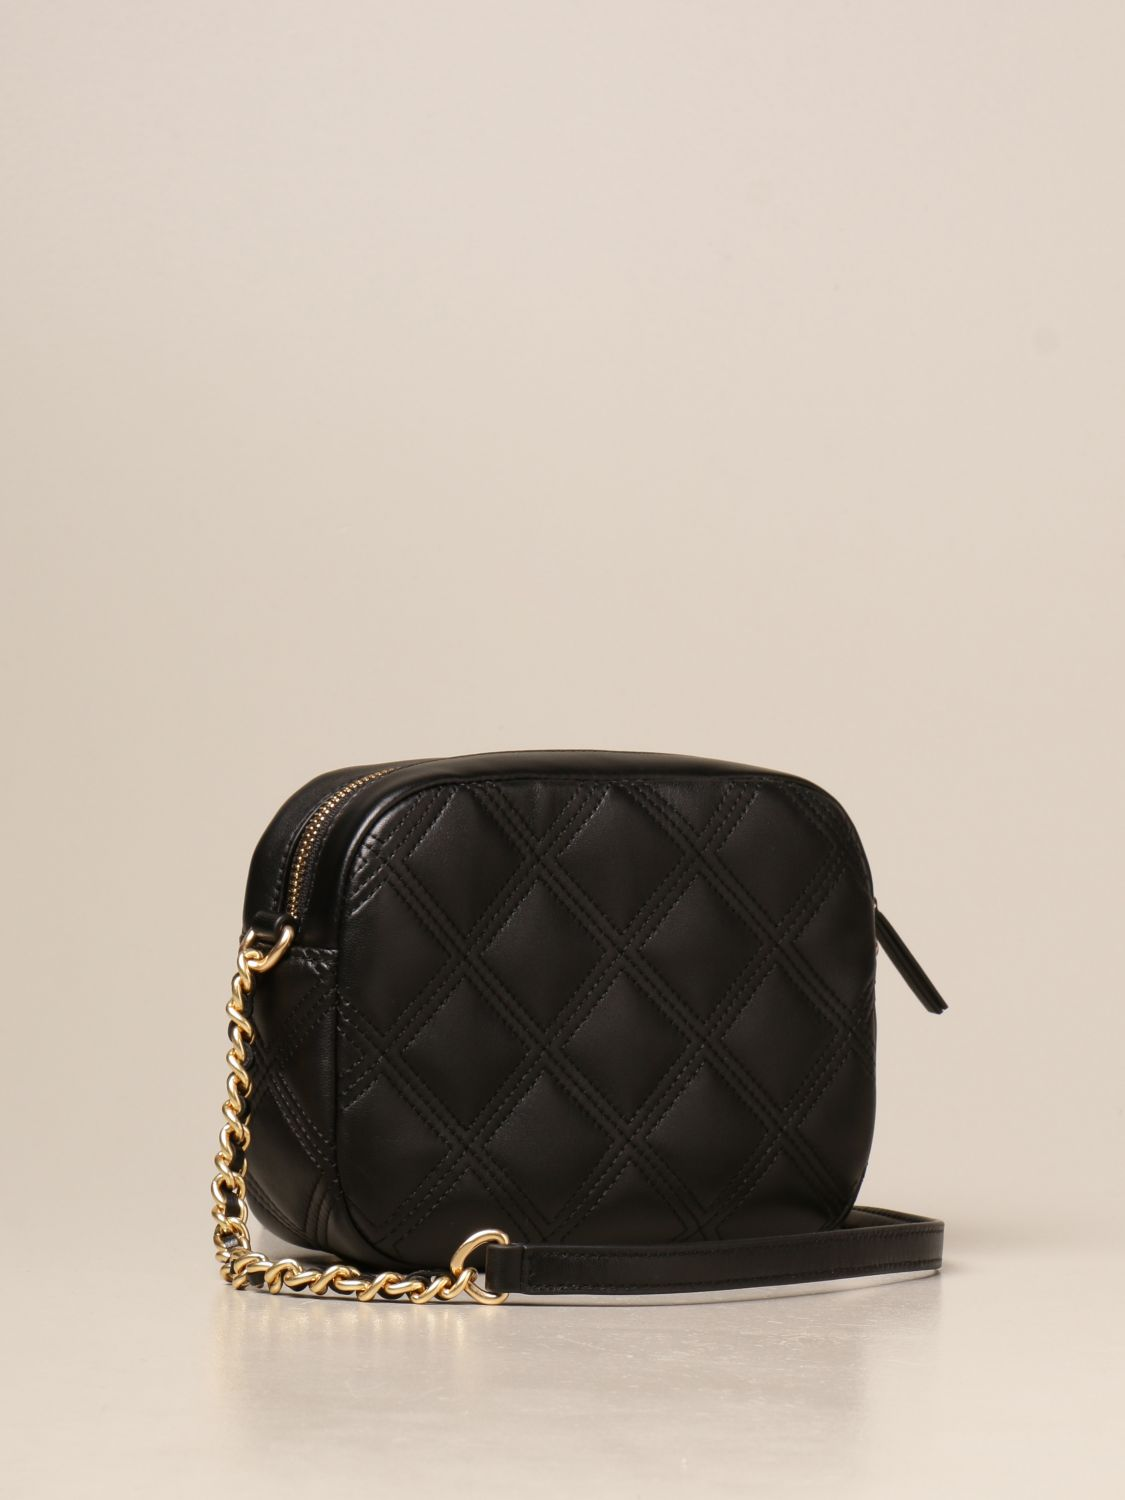 Crossbody bags Tory Burch: Feming Tory Burch bag in quilted leather black 2